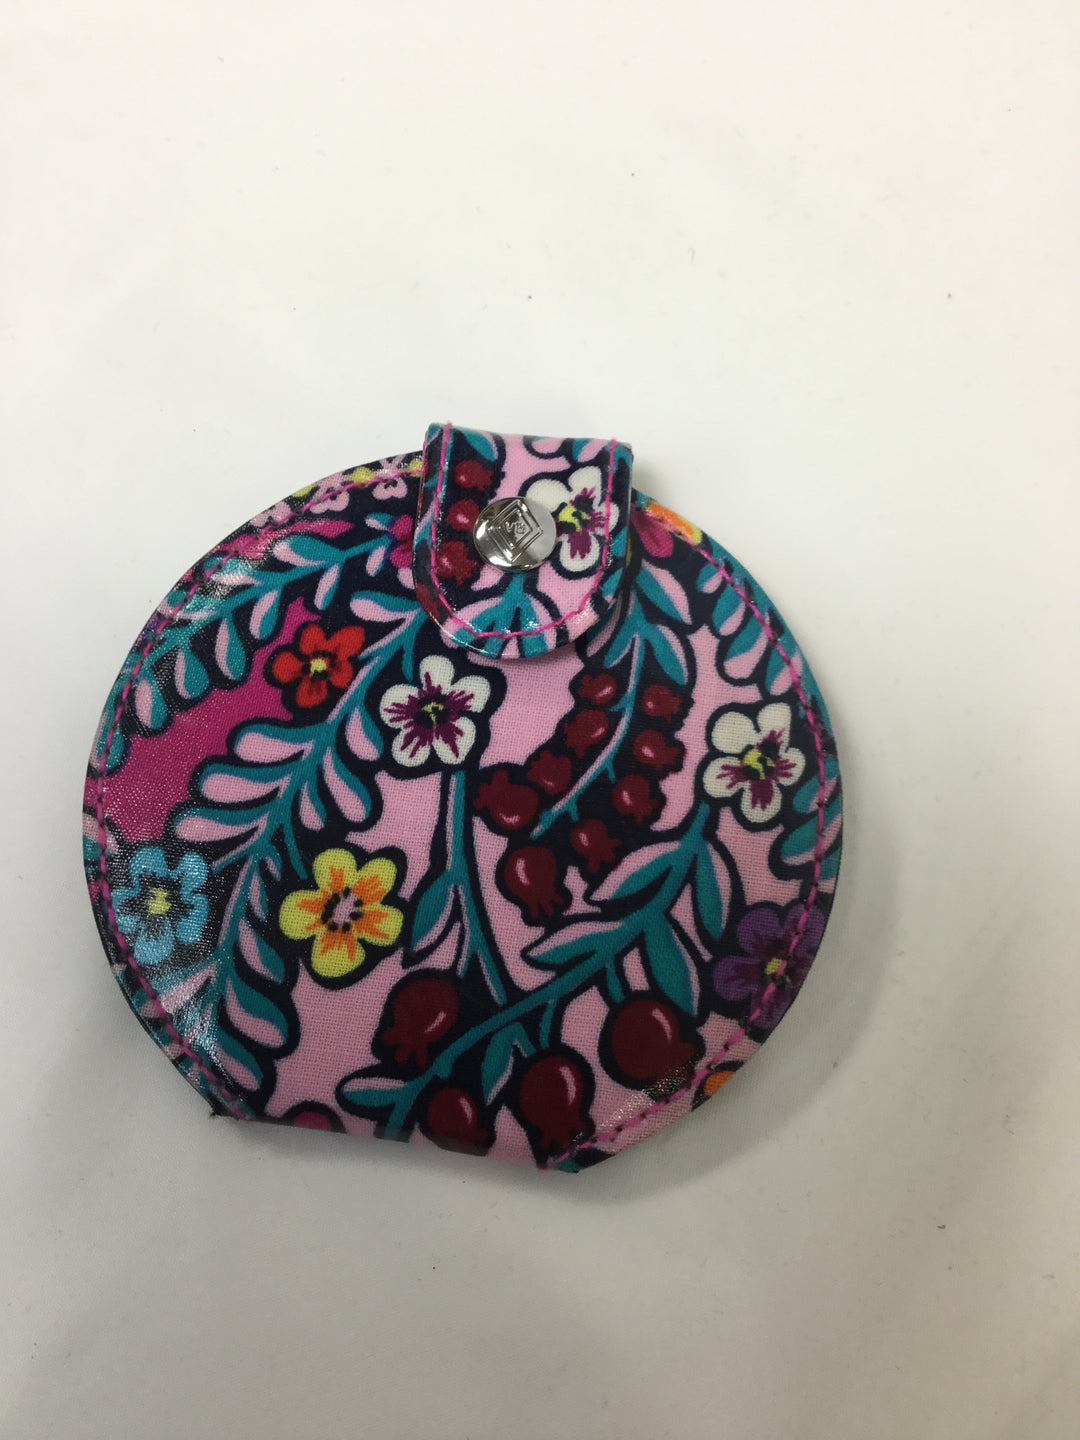 Primary Photo - BRAND: VERA BRADLEY <BR>STYLE: ACCESSORY TAG <BR>COLOR: MULTI <BR>SKU: 155-15599-220345<BR>FLORAL COMPACT MIRROR/SNAP CLOSURE<BR>